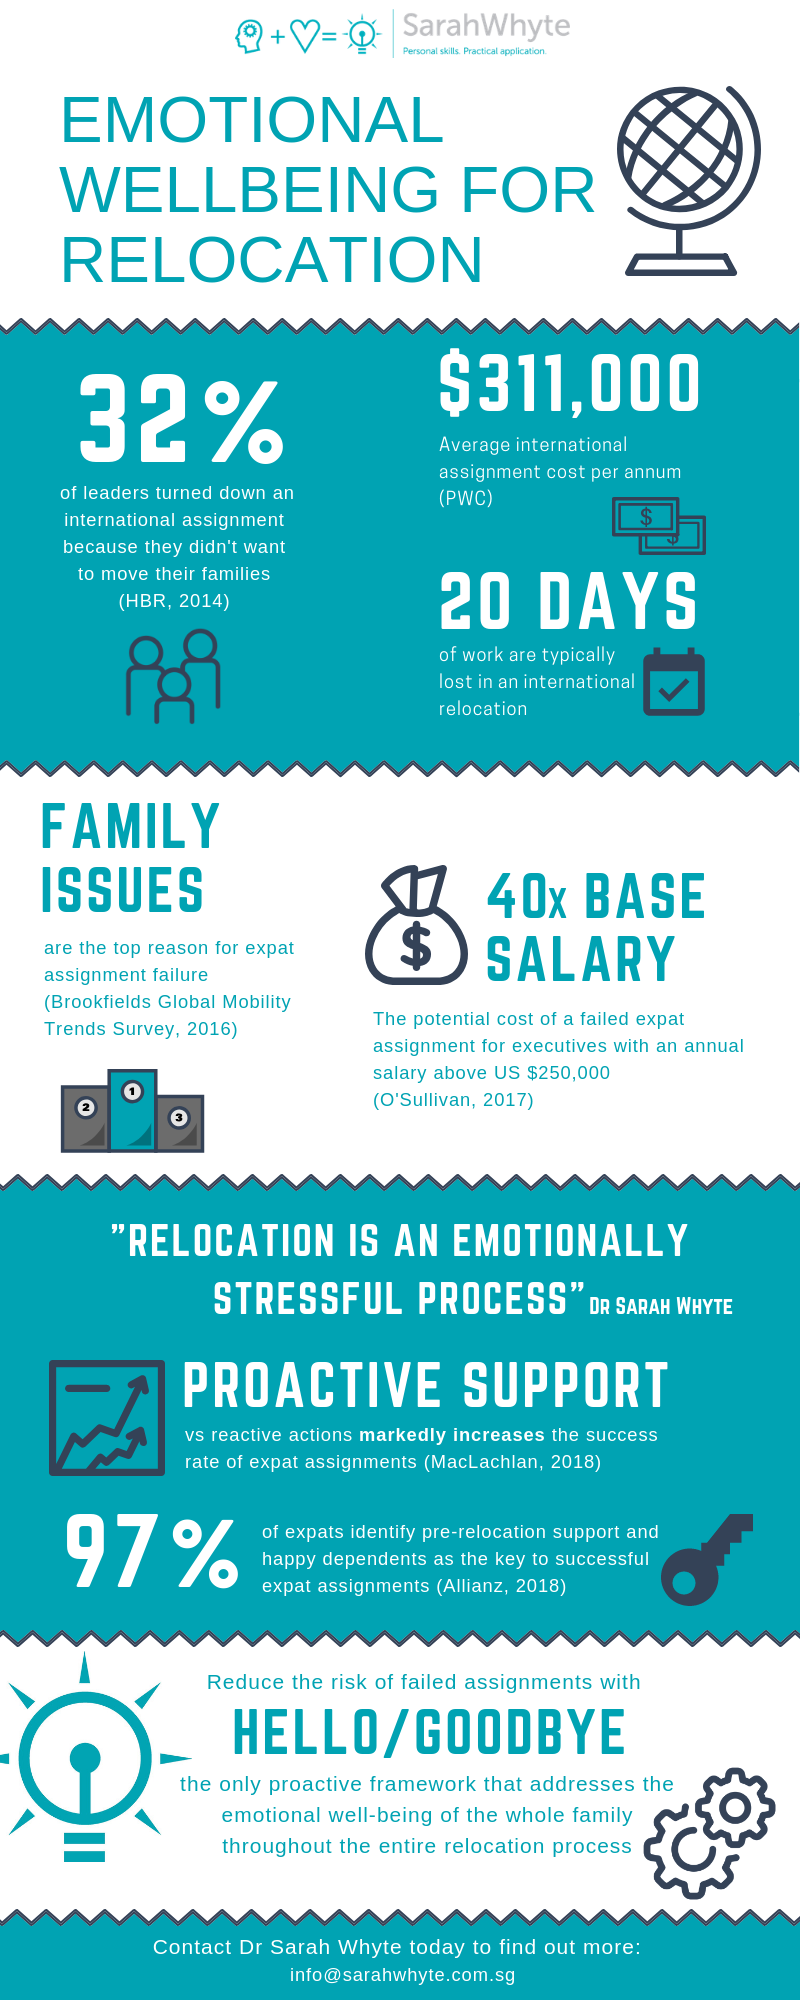 2019-01-04 Infographic-Emotional wellbeing for relocation-SWC